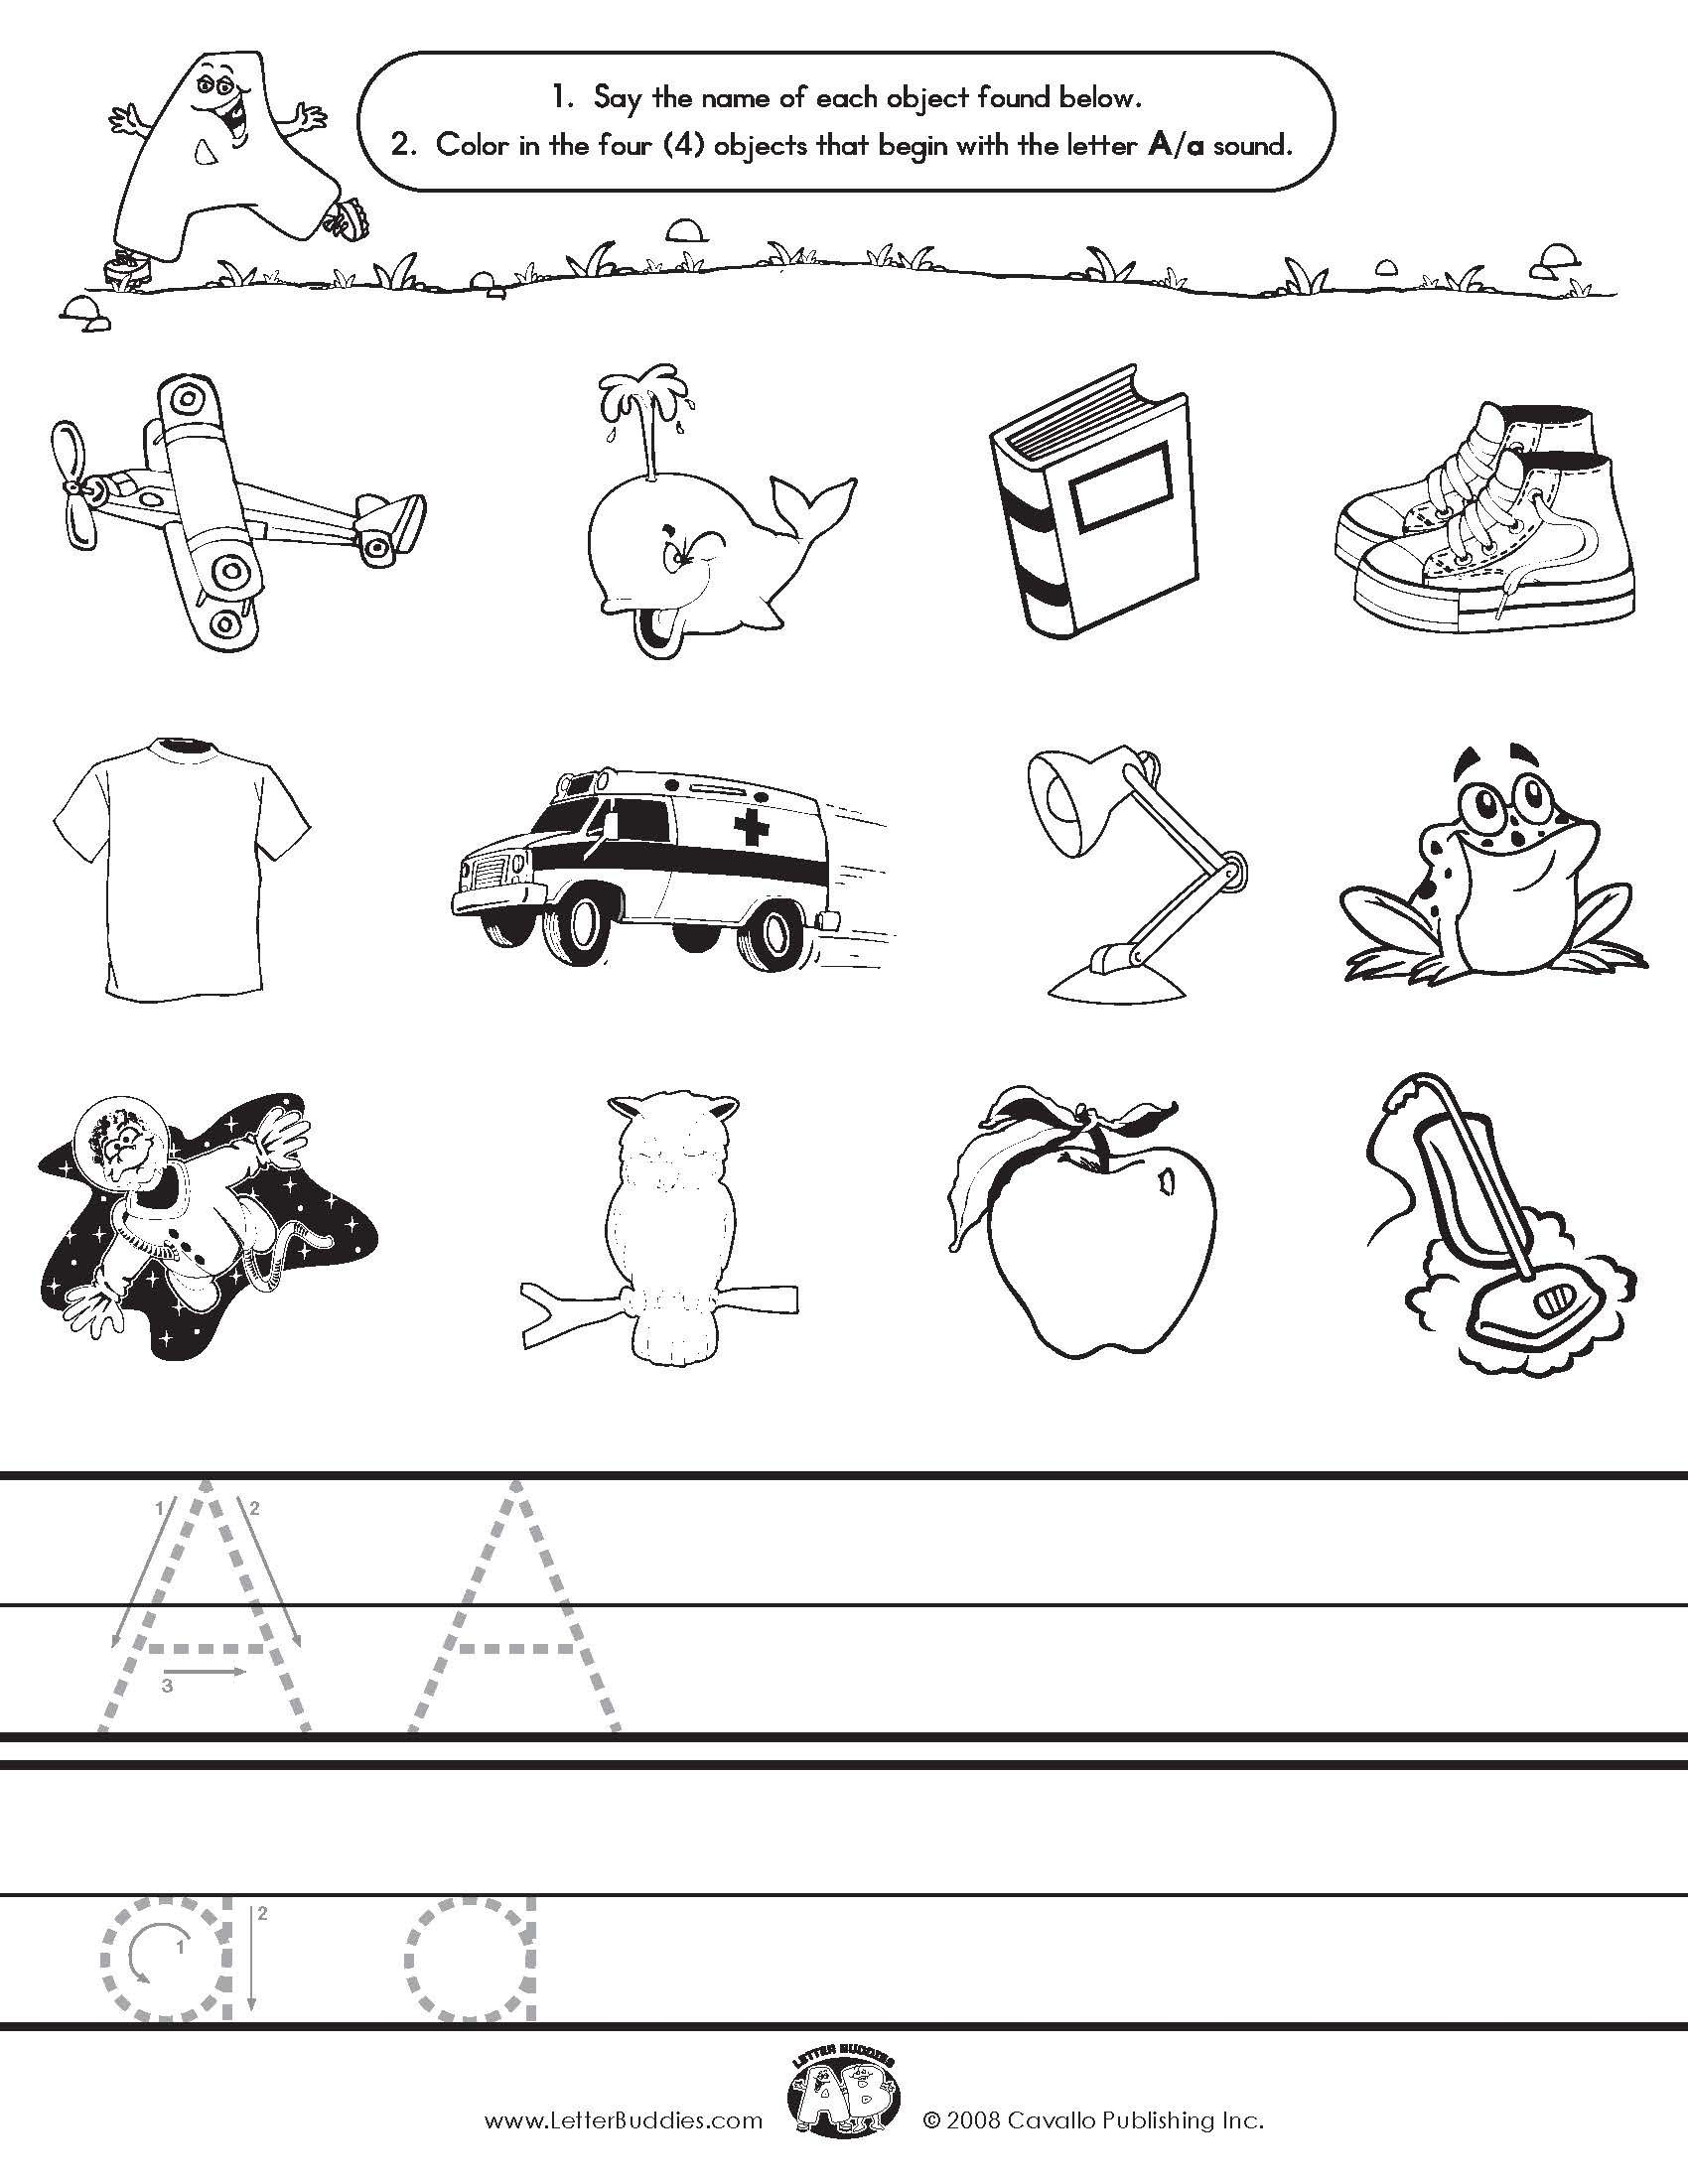 Worksheets Letter Sound Worksheets initial sounds writing alphabet language arts ideas letter buddies a